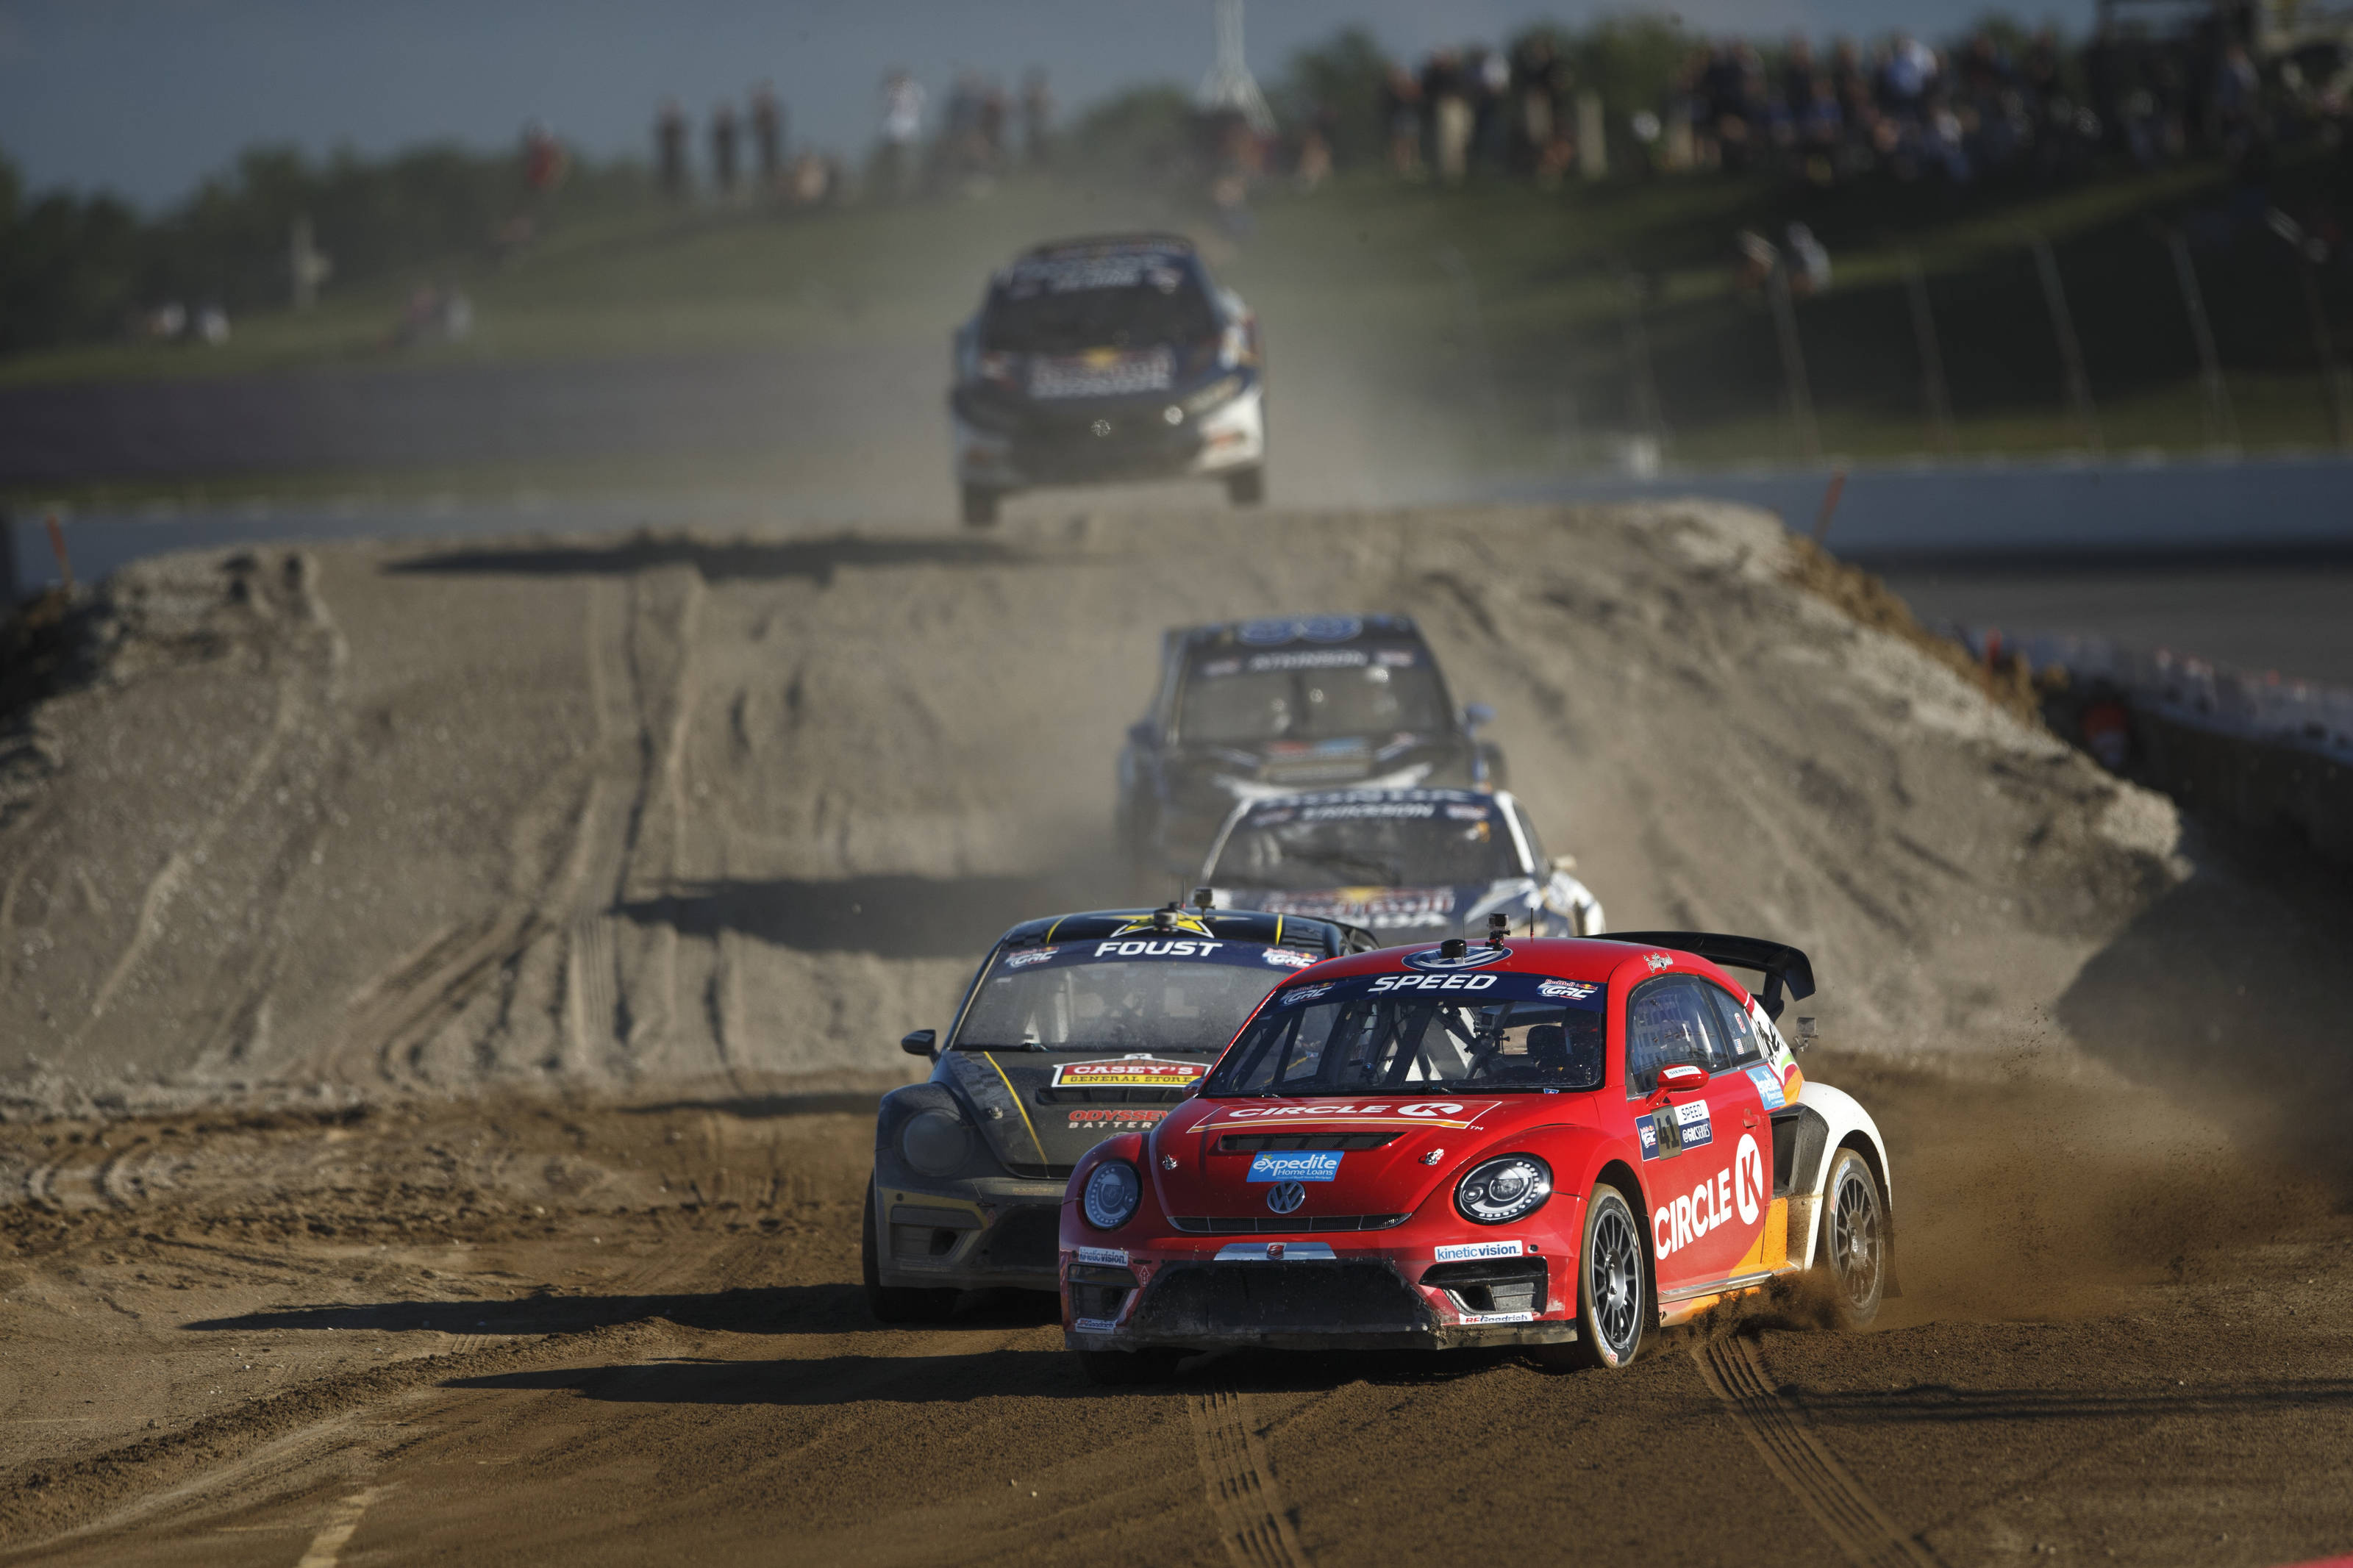 Scott Speed Wins Red Bull GRC Indianapolis